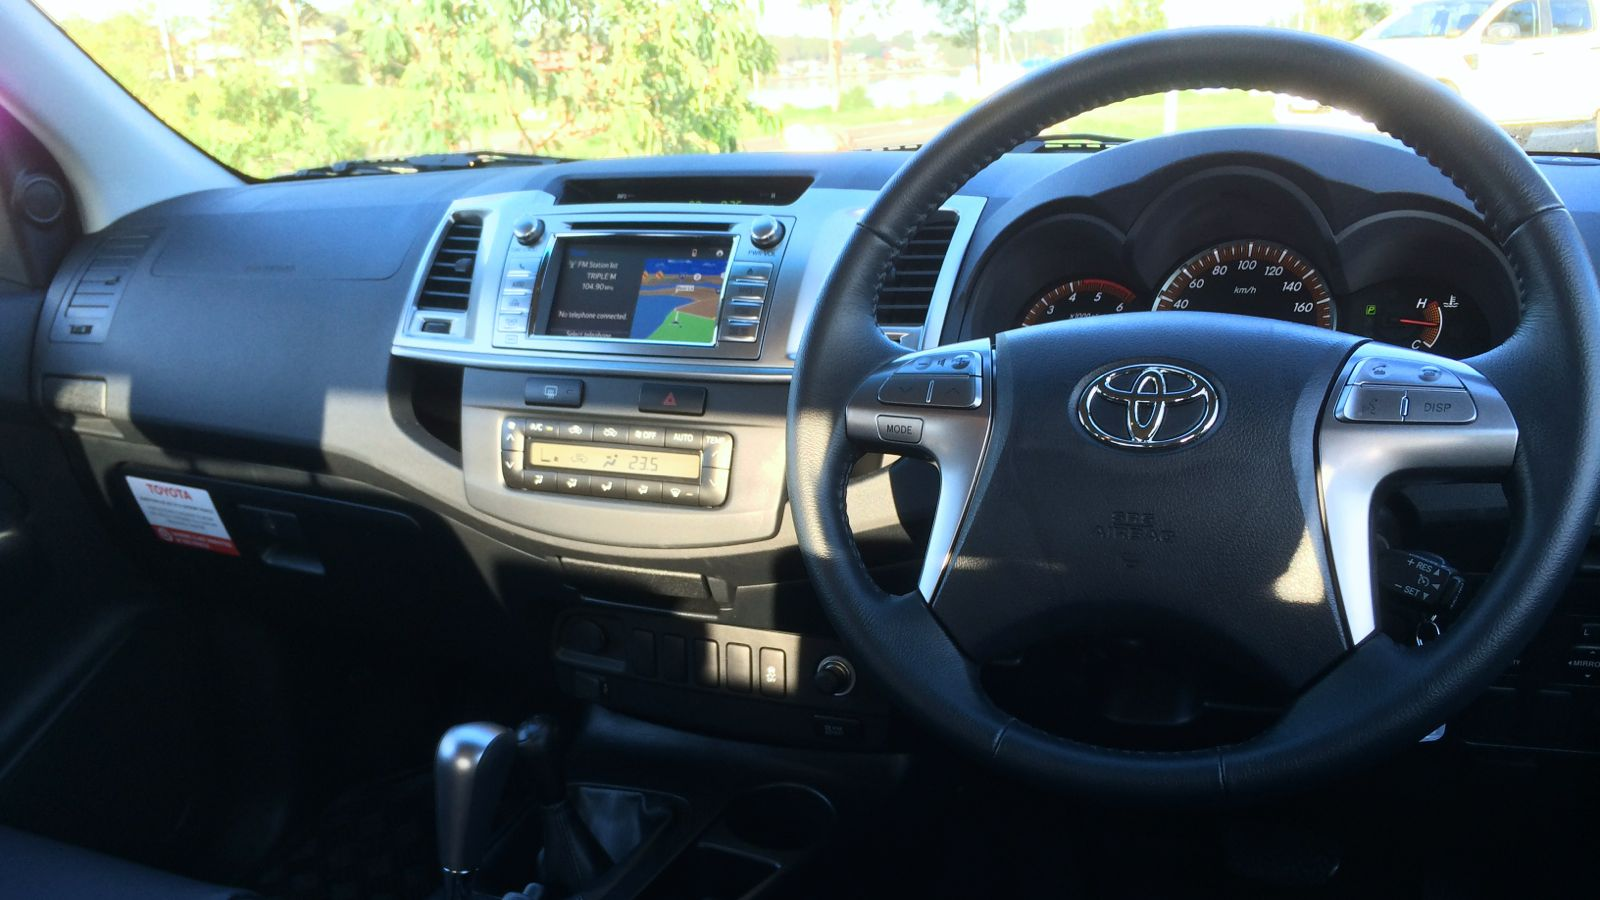 2014 Toyota HiLux Review : 4x4 SR5 diesel dual-cab | CarAdvice